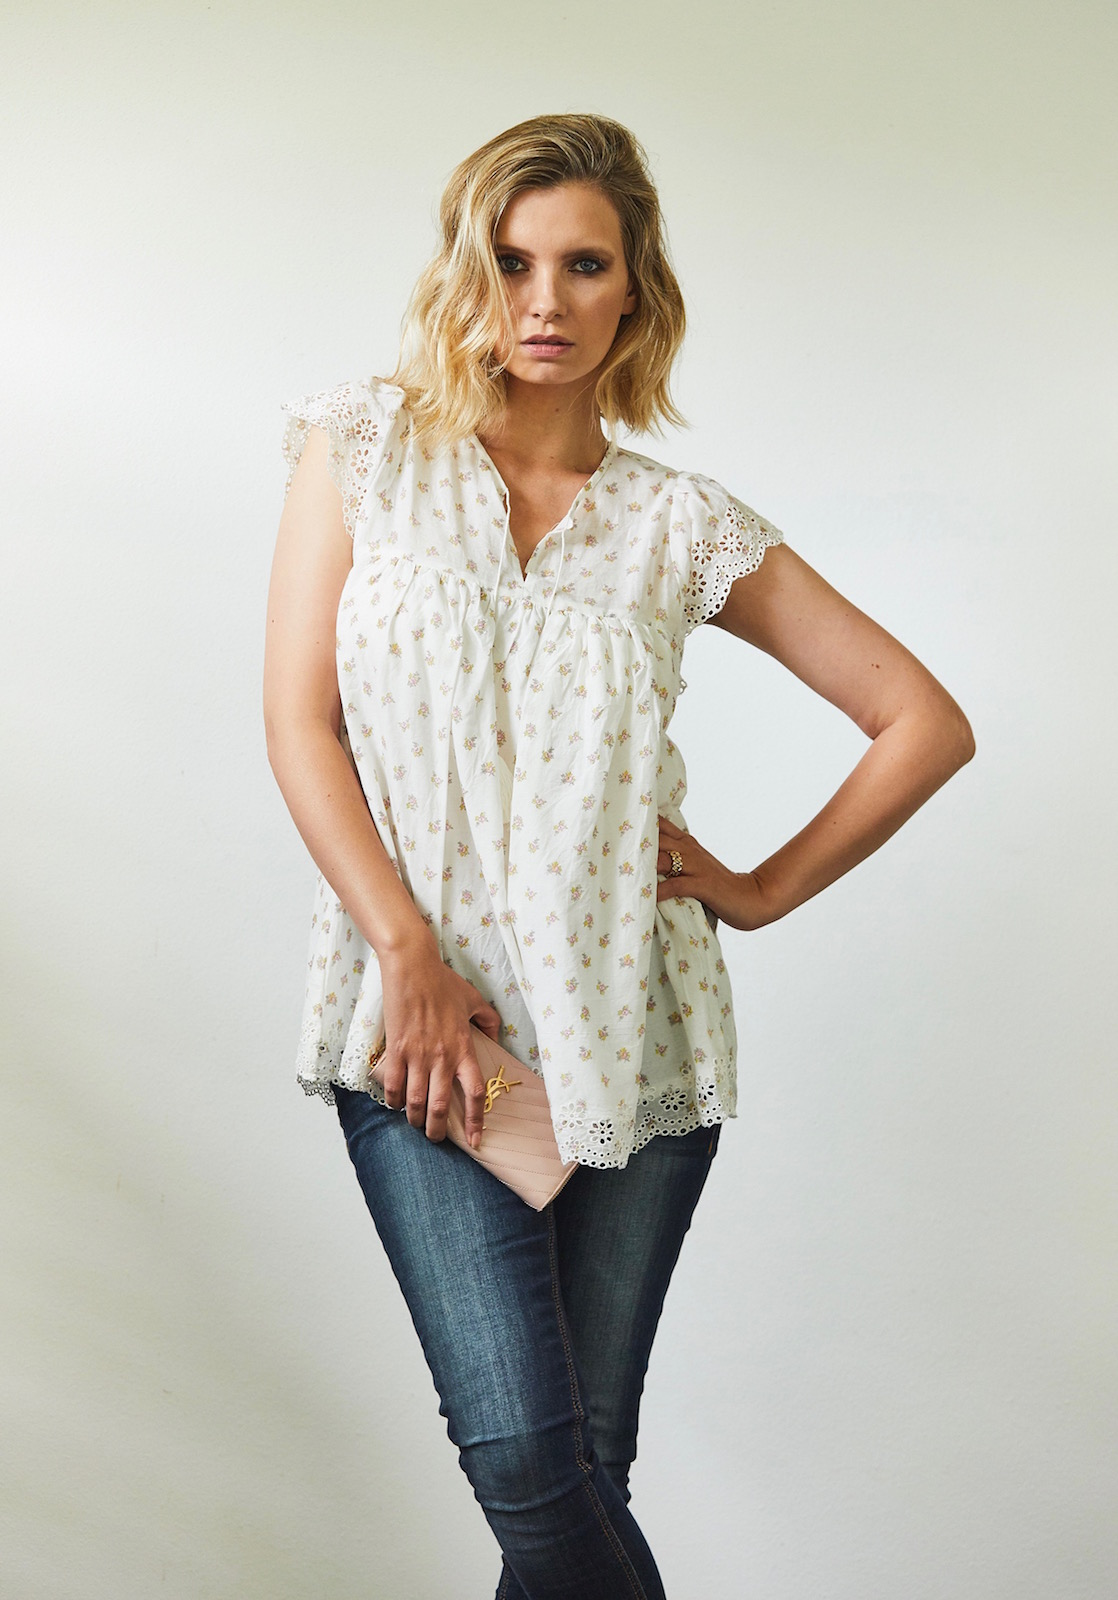 hush summer top